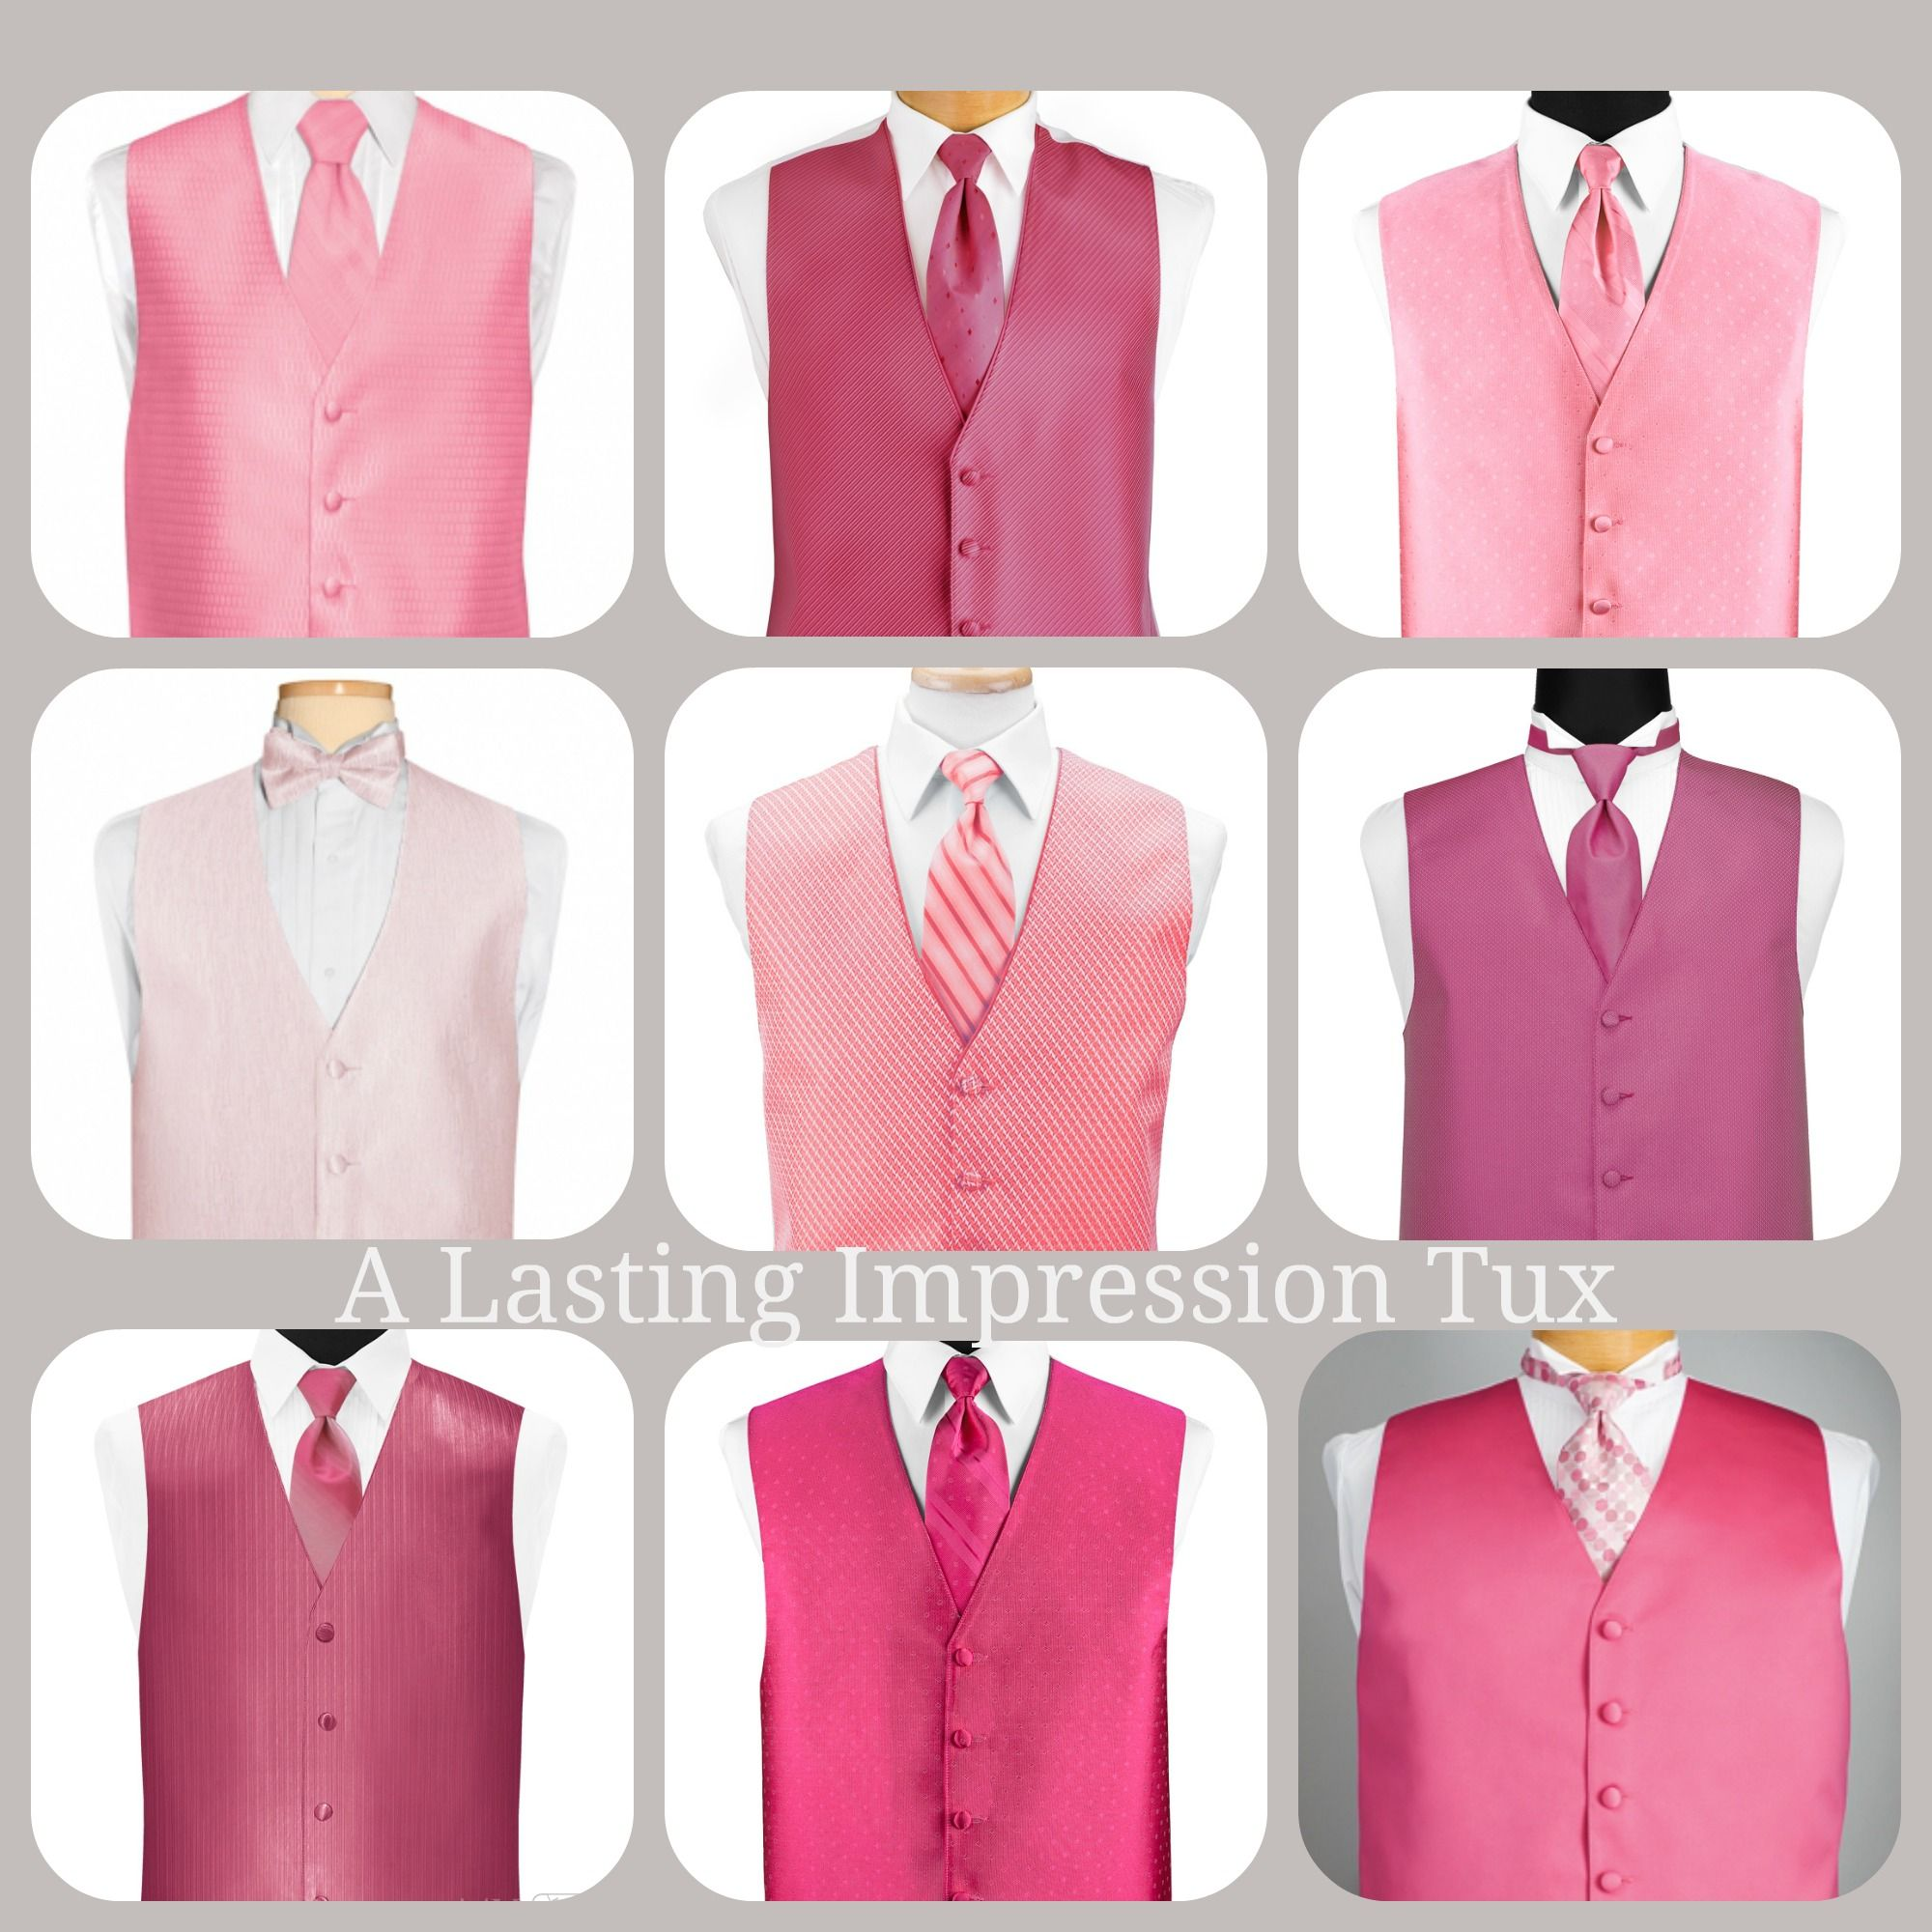 Pink vests have been very popular. They look great with a gray ...